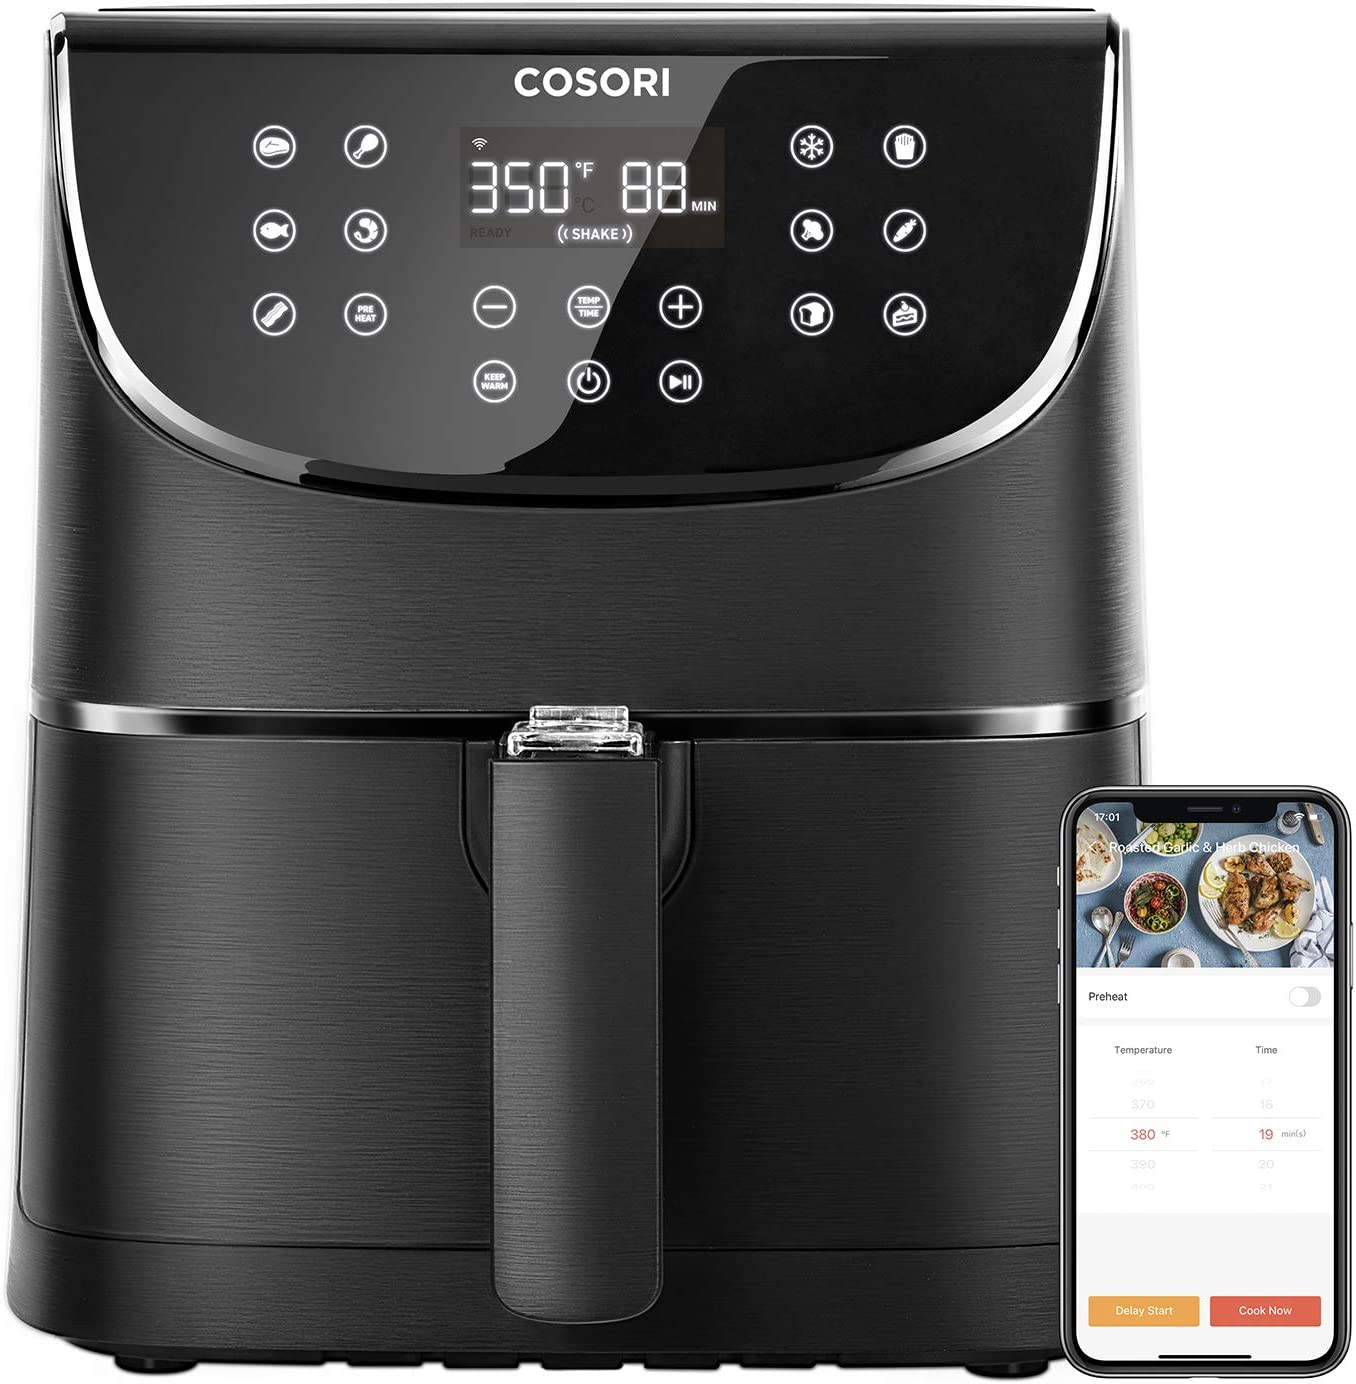 COSORI Smart WiFi Air Fryer 5.8QT(100 Recipes),1700-Watt Programmable Base for Air Frying,Roasting&Keep Warm 11 Cooking Preset,Preheat&Shake Remind,Digital Touchscreen,Work with Alexa, Black